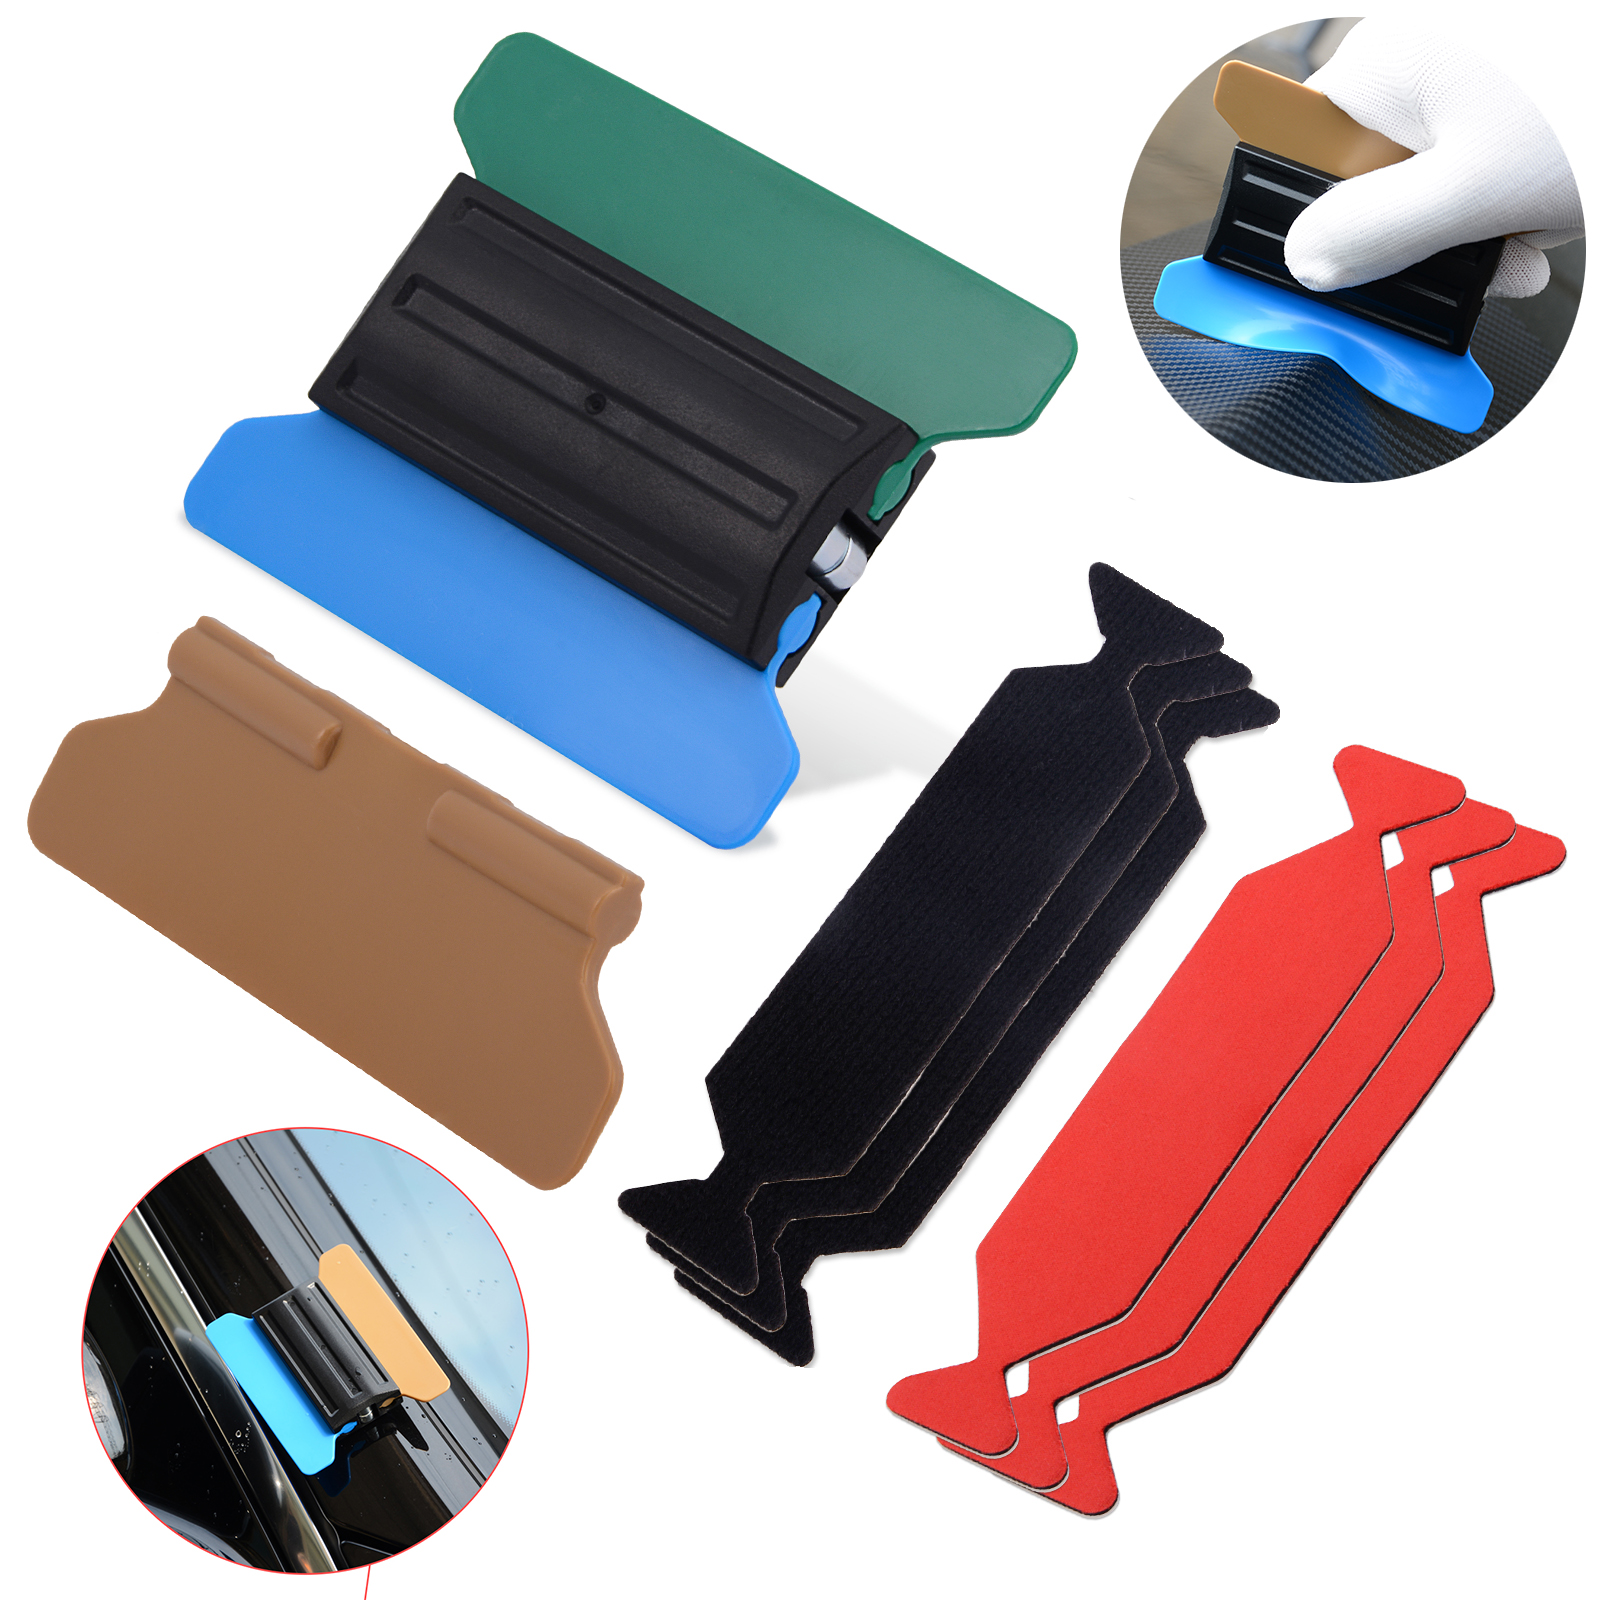 FOSHIO Vinyl Wrap Car Film Magnetic Squeegee+6pcs Scrapper Fabric Cloth Carbon Fiber Sticker Window Tint Tool Kit Accessories